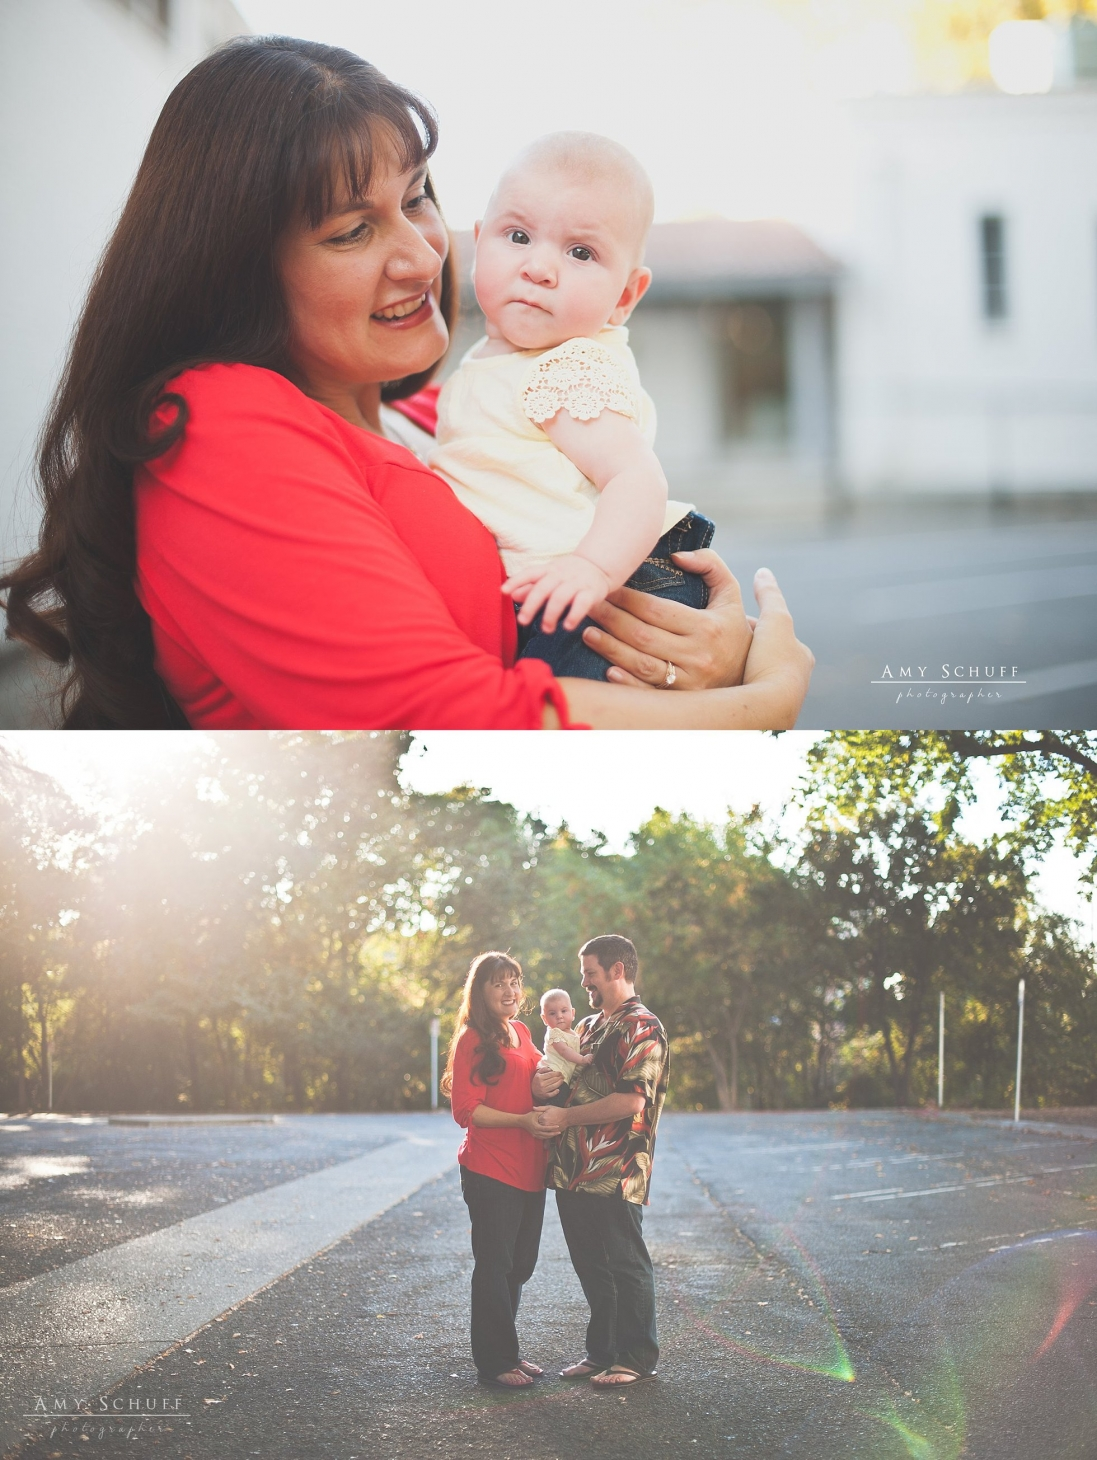 Amy Schuff - Roseville CA Family Photographer